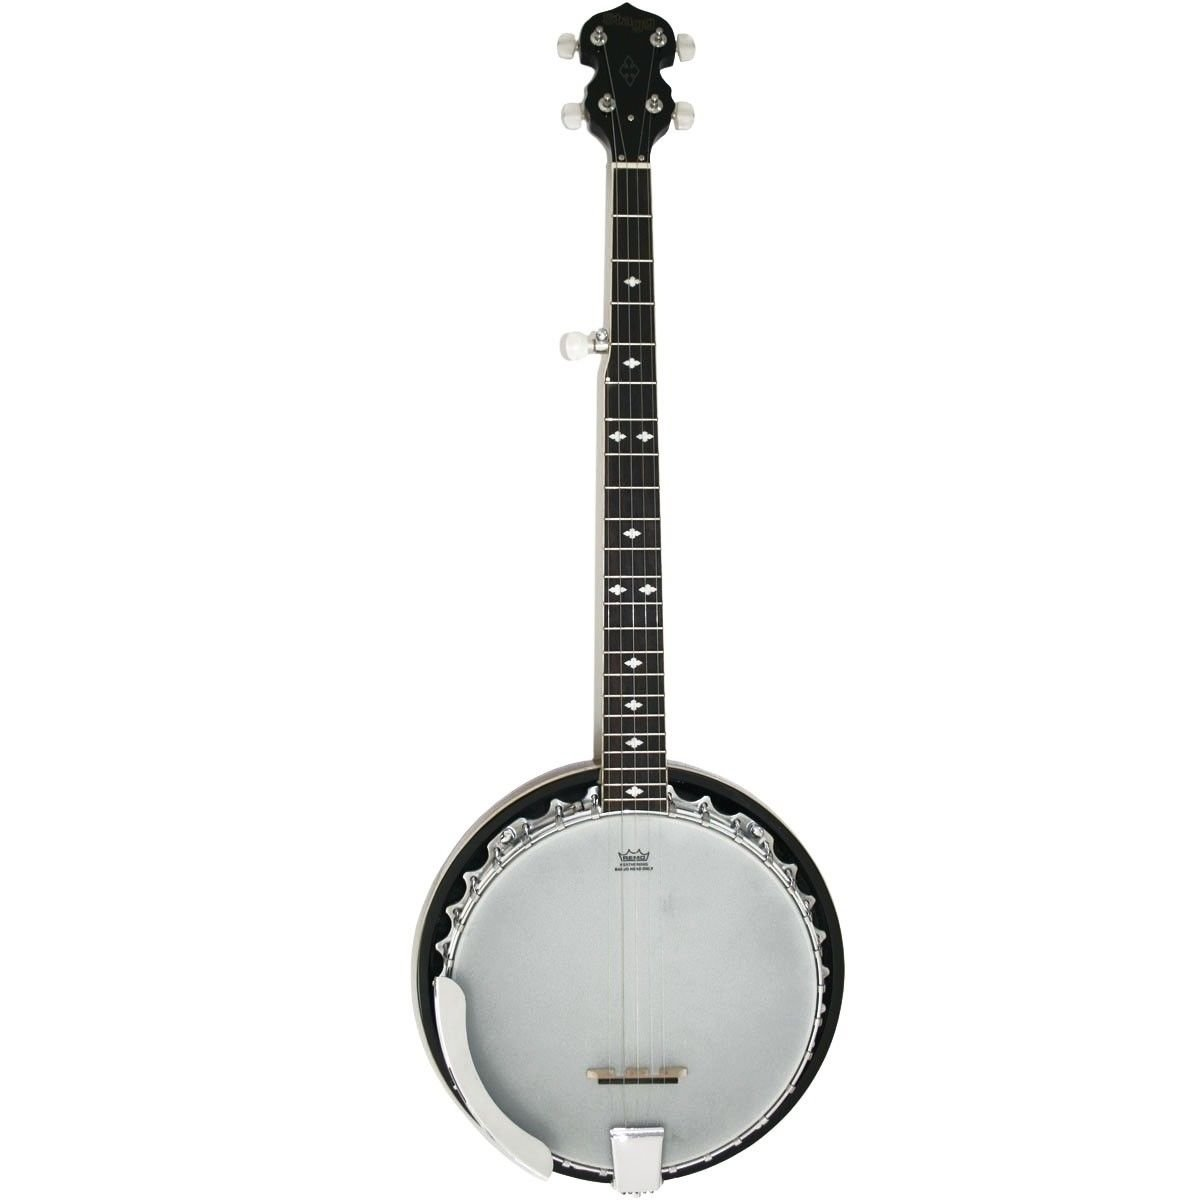 Stagg BJM30 DL 5-String Bluegrass Banjo Deluxe with Metal Pot